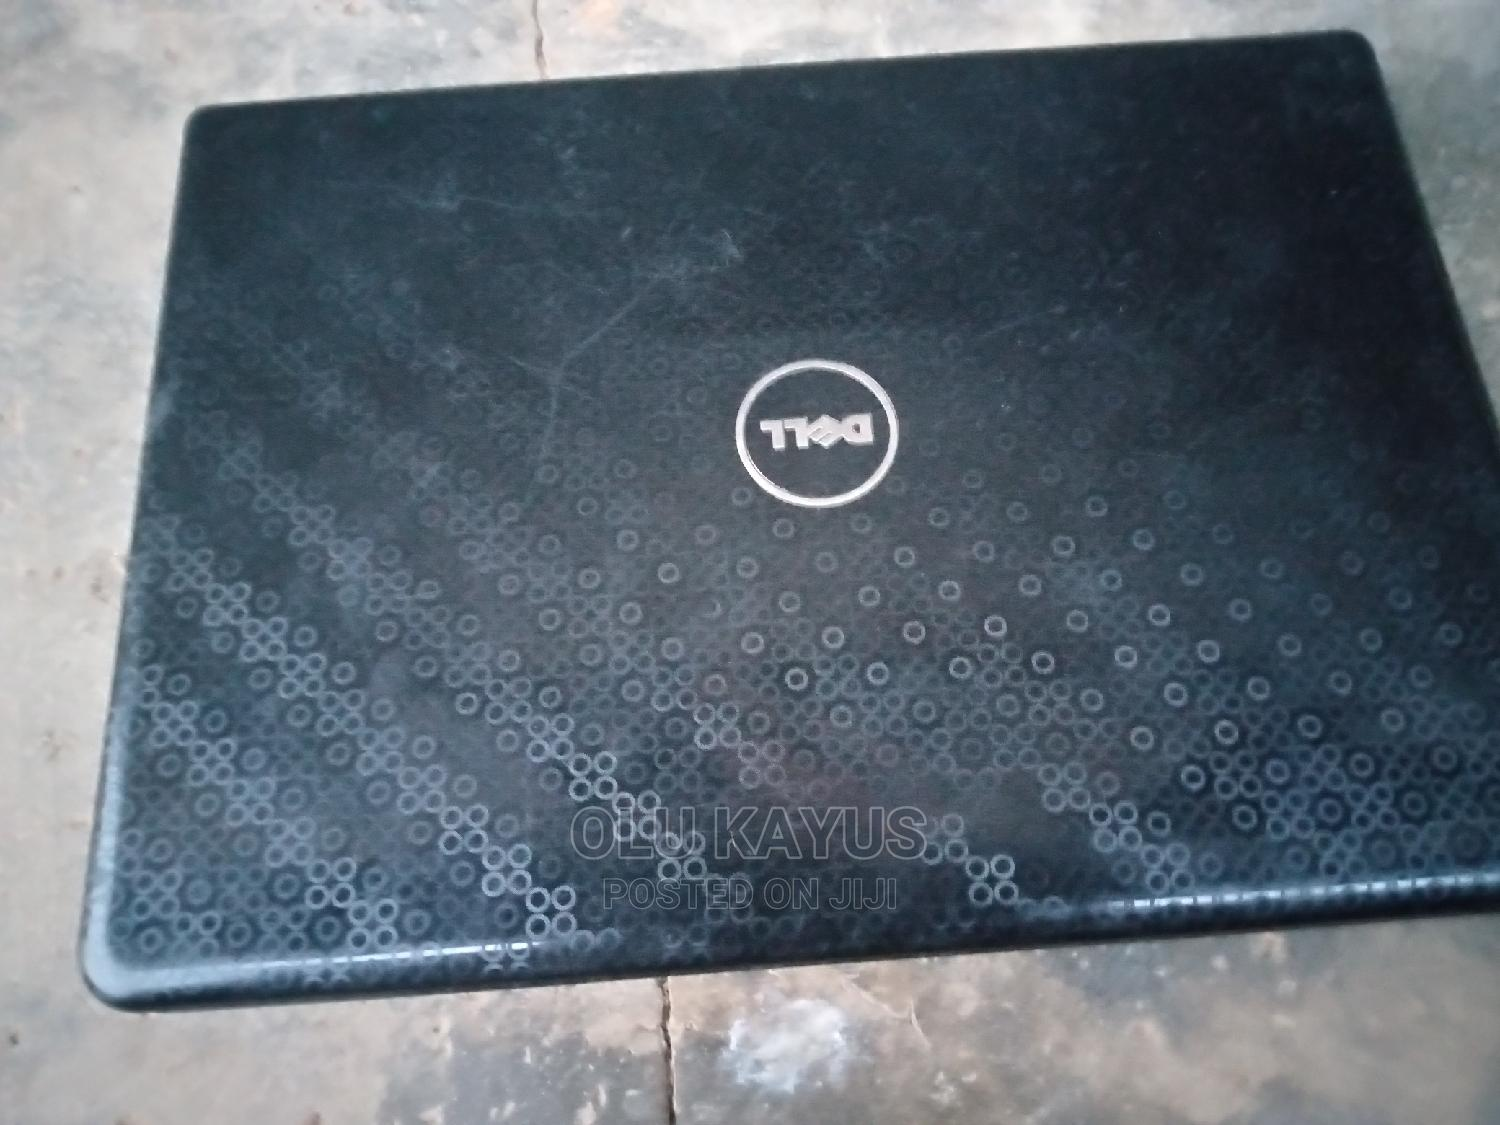 Laptop Dell Inspiron 14 7000 2GB Intel Pentium HDD 160GB | Laptops & Computers for sale in Ibadan, Oyo State, Nigeria